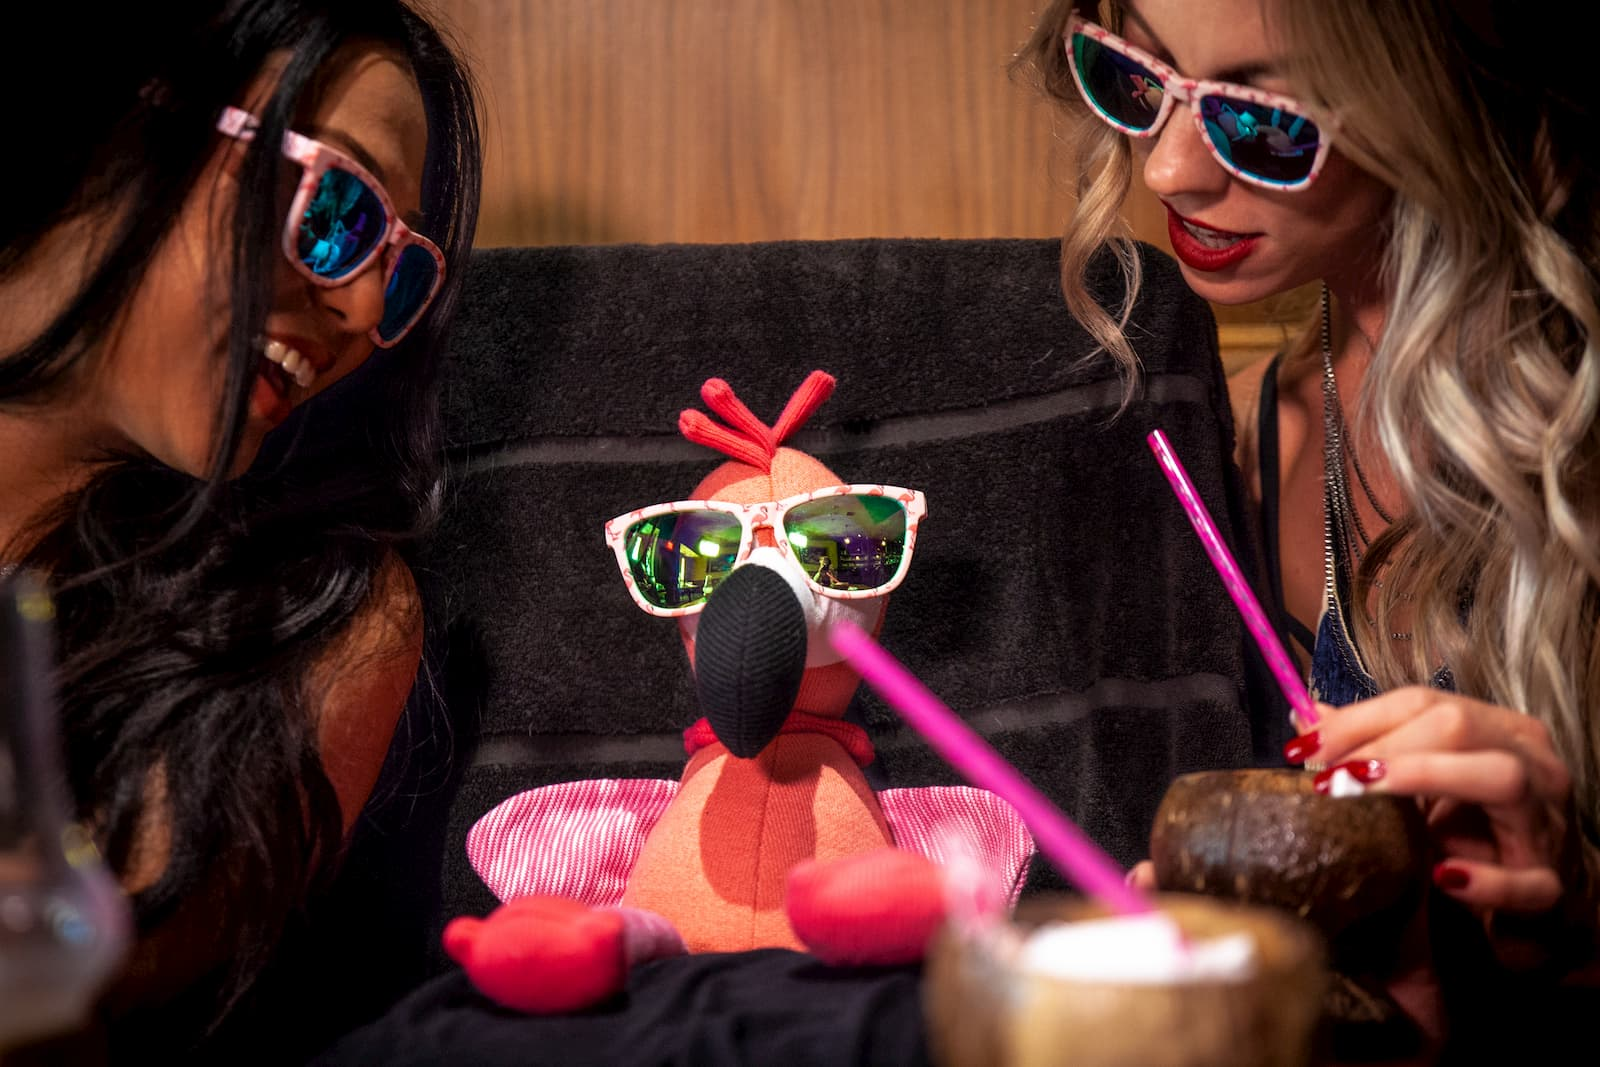 girls wearing goodr running sunglasses on a date with flamingo CEO Carl